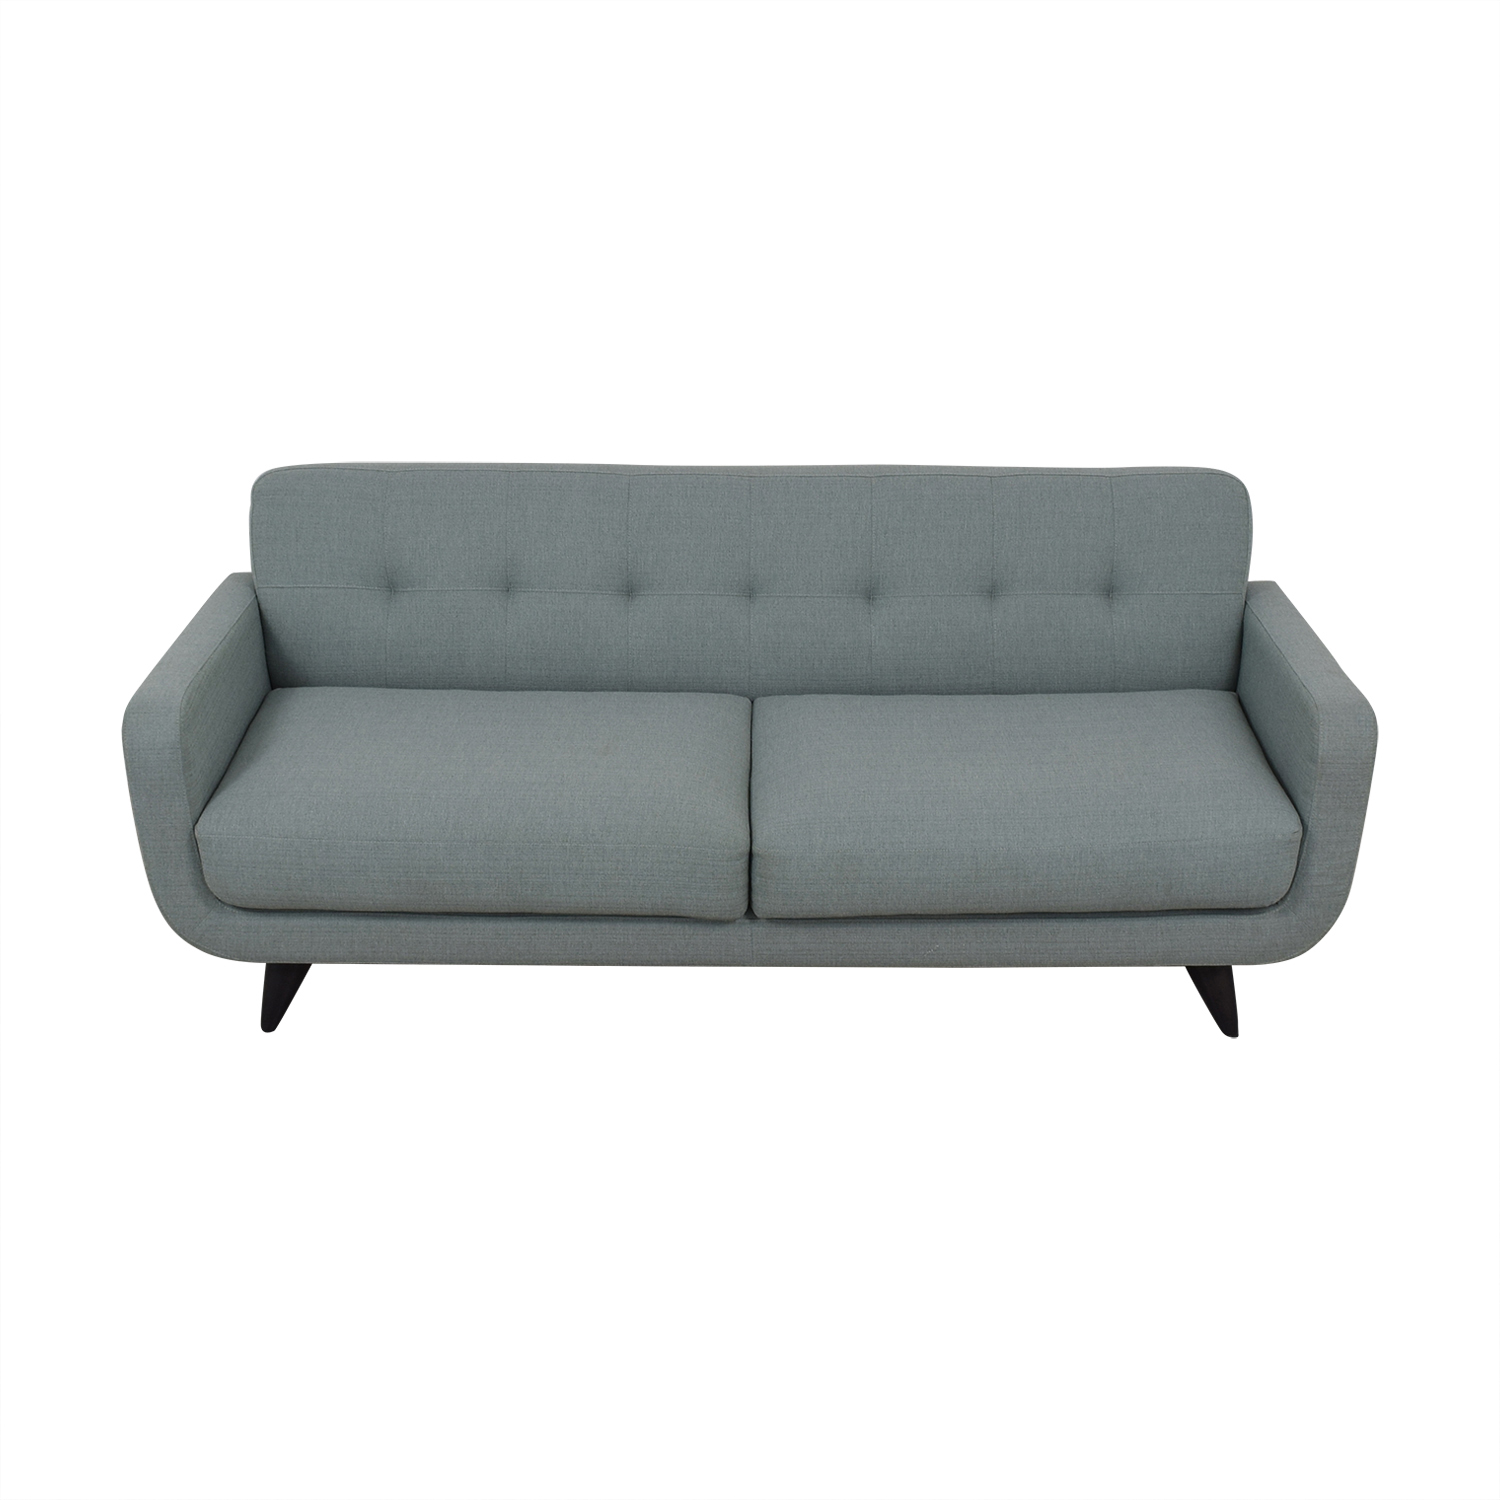 Room & Board Room & Board Anson Blue Grey Tufted Two-Cushion Couch nj